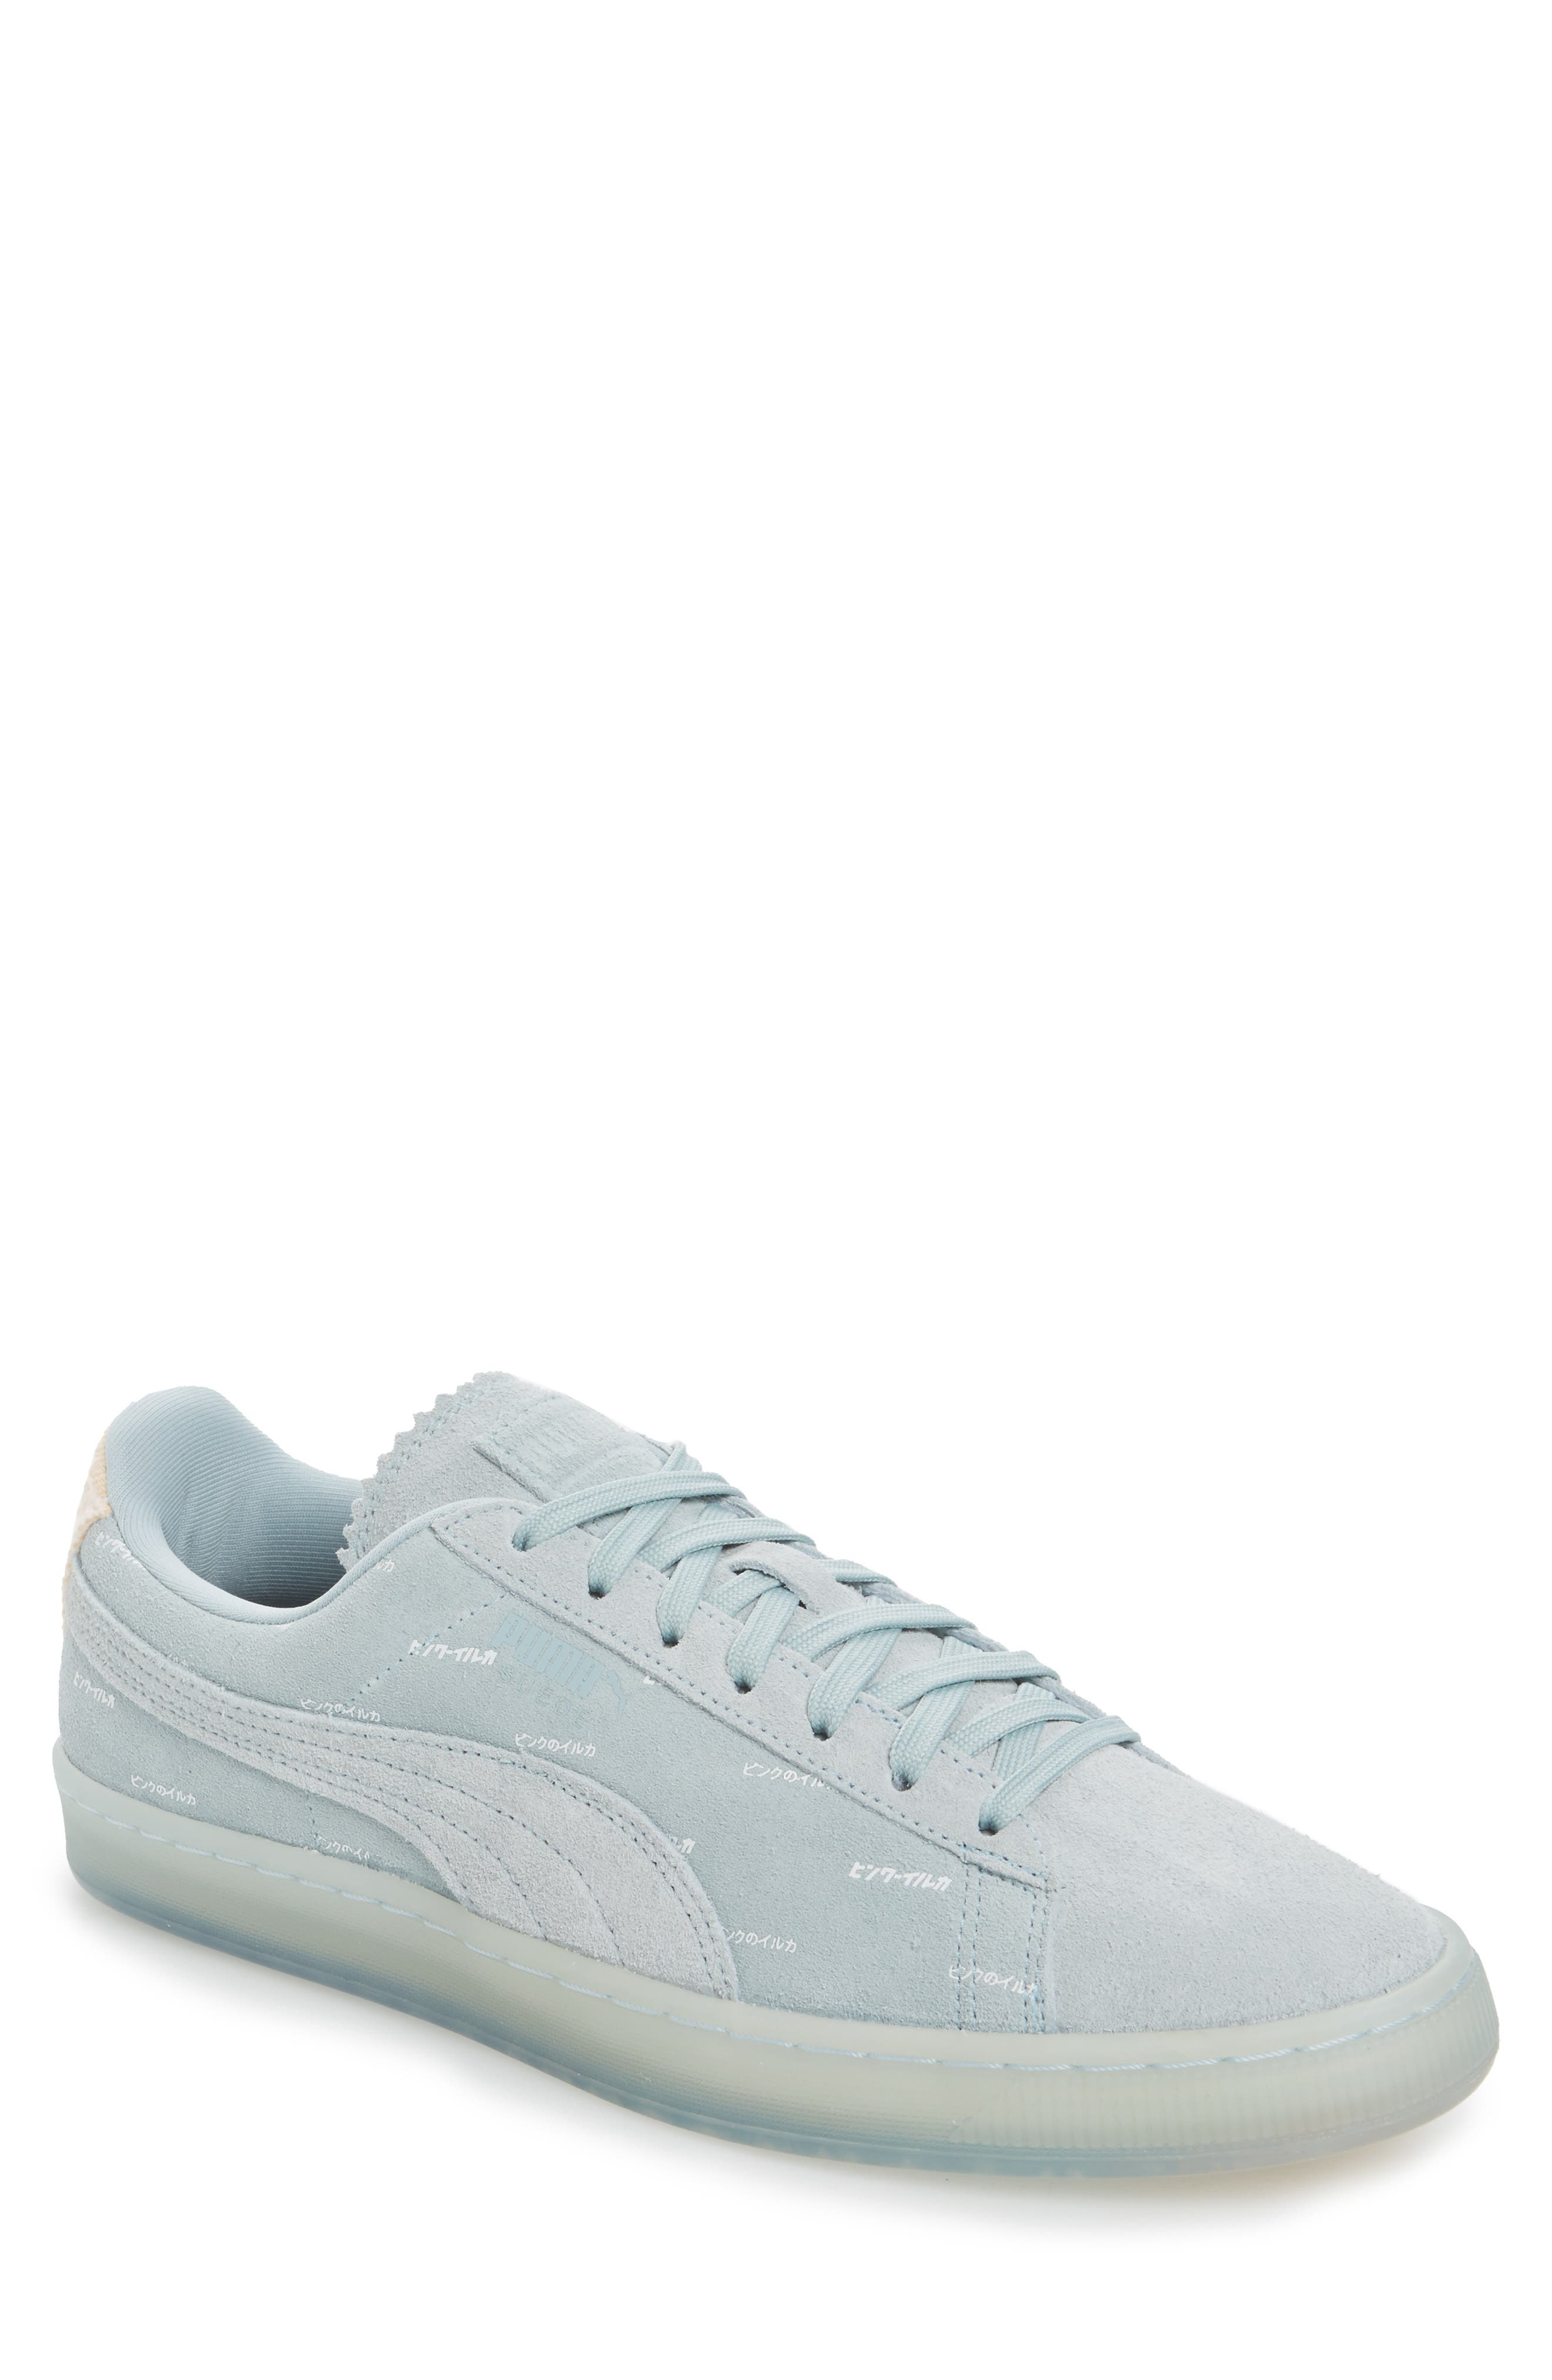 Main Image - PUMA x Pink Dolphin Suede V2 Sneaker (Men)